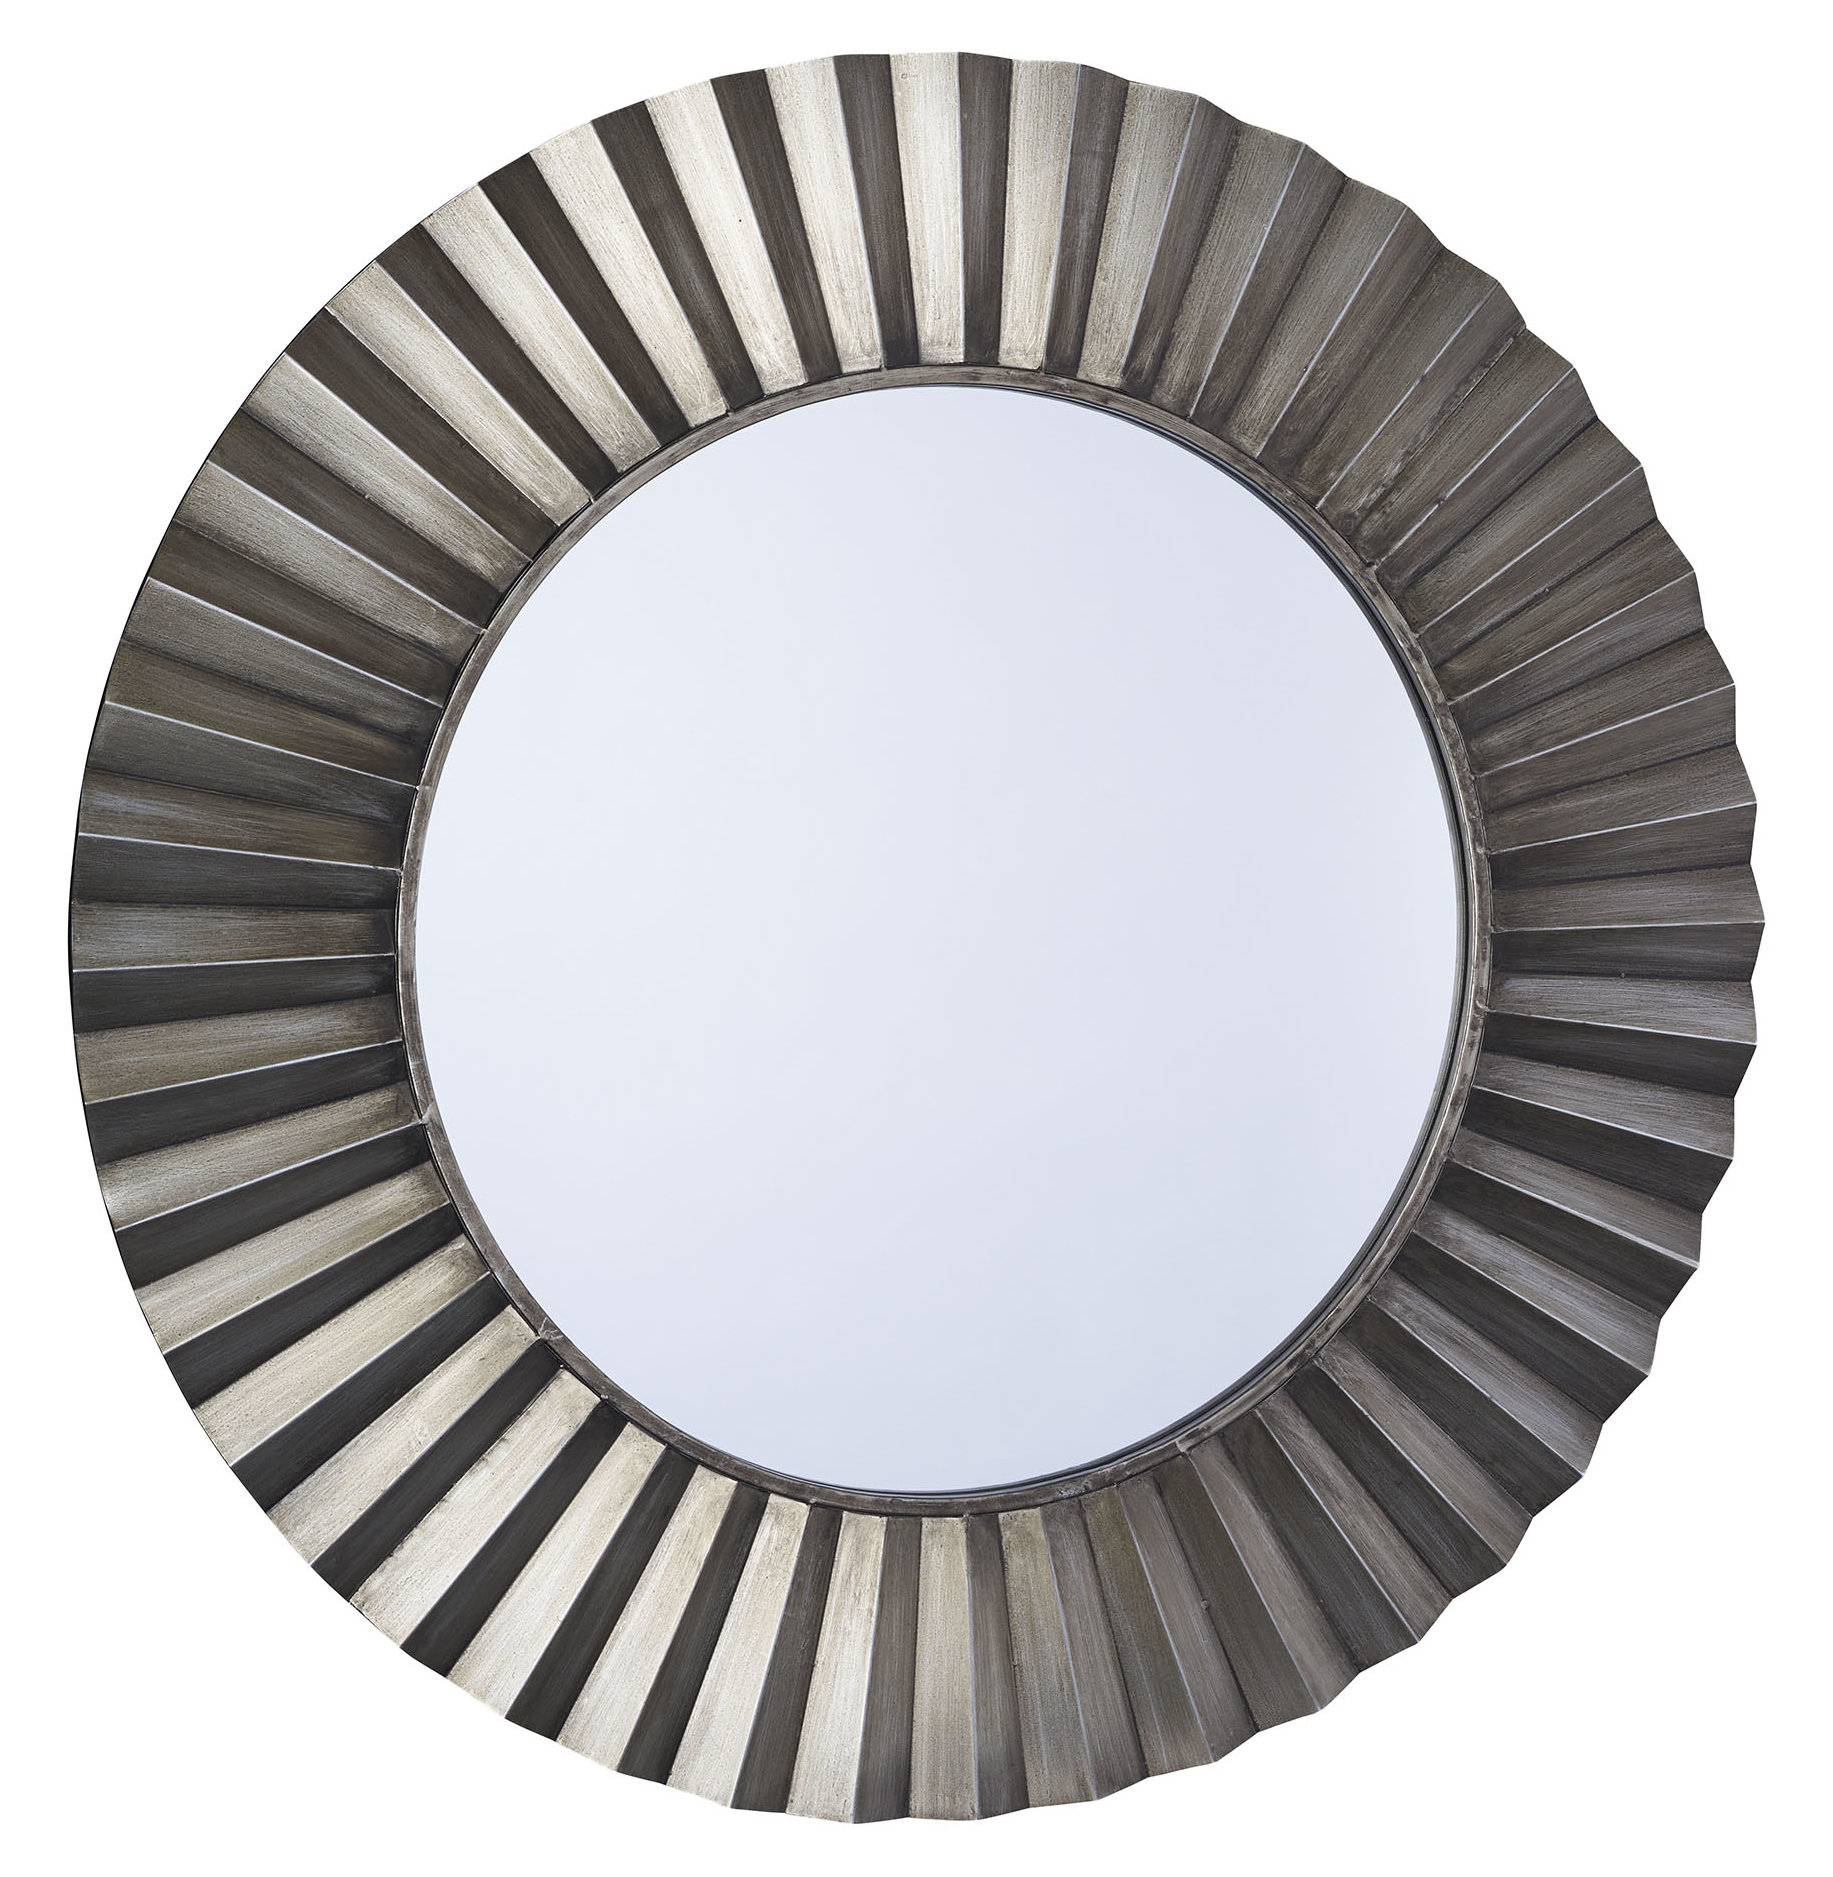 Sunburst Round Wall Mirror Regarding Lidya Frameless Beveled Wall Mirrors (View 17 of 30)